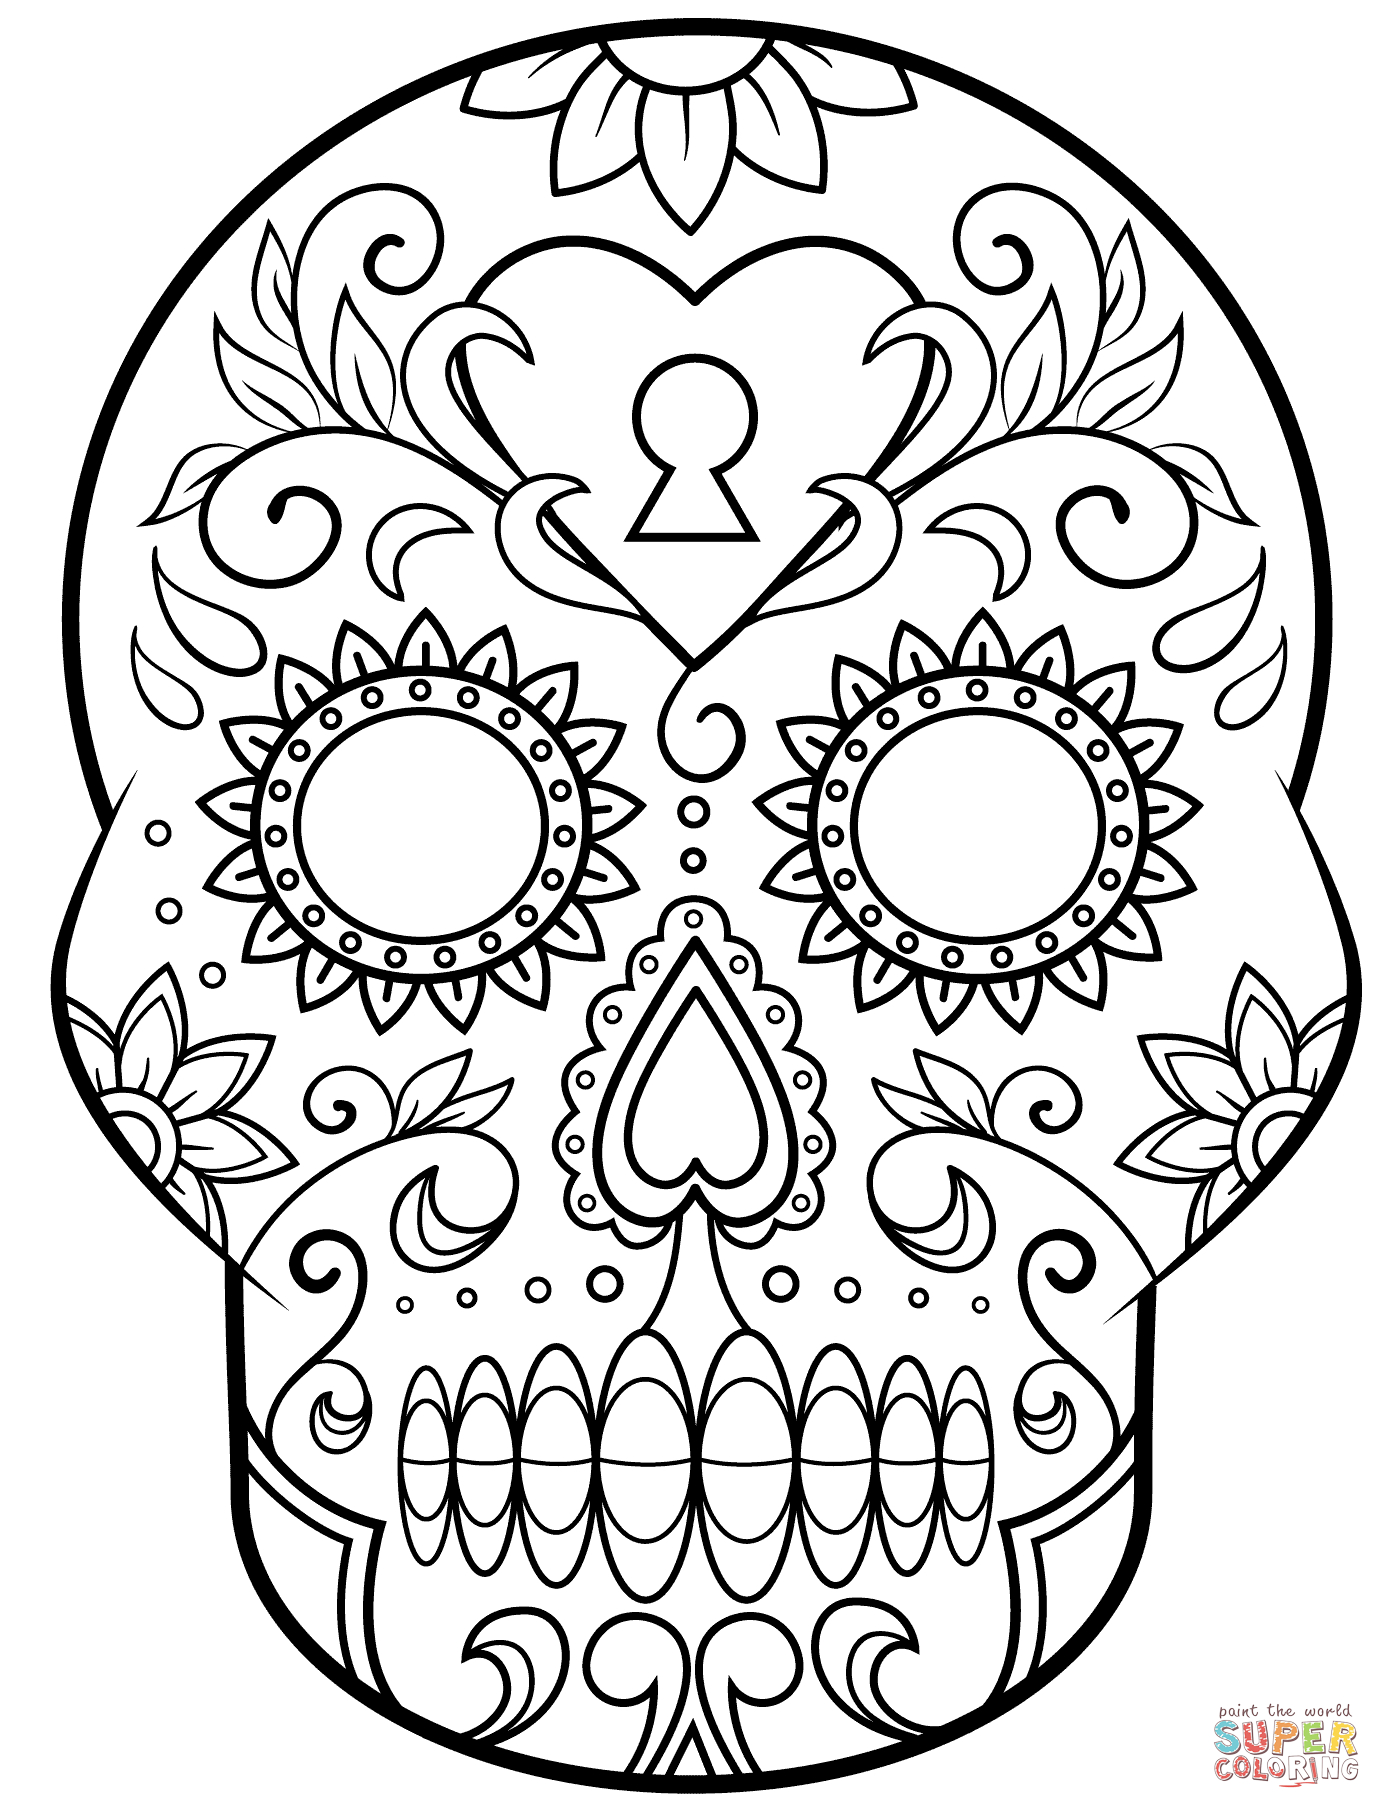 Day Of The Dead Sugar Skull Coloring Page | Free Printable - Free Printable Day Of The Dead Coloring Pages